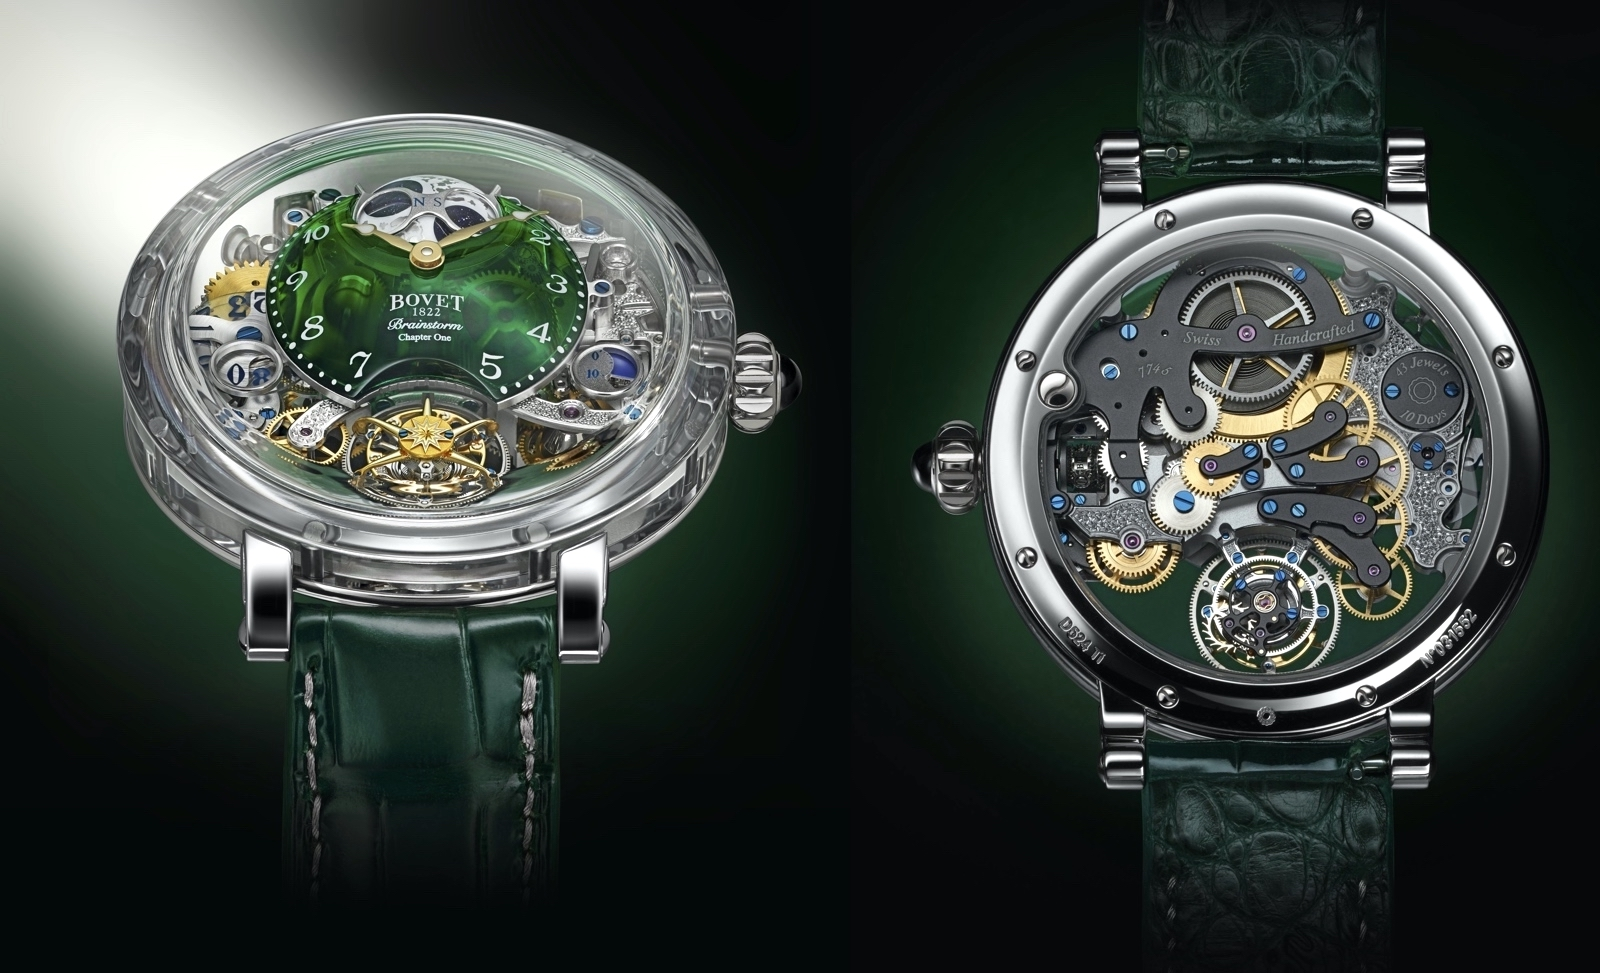 Bovet 1822 Récital 26 Brainstorm Chapter One Green Views